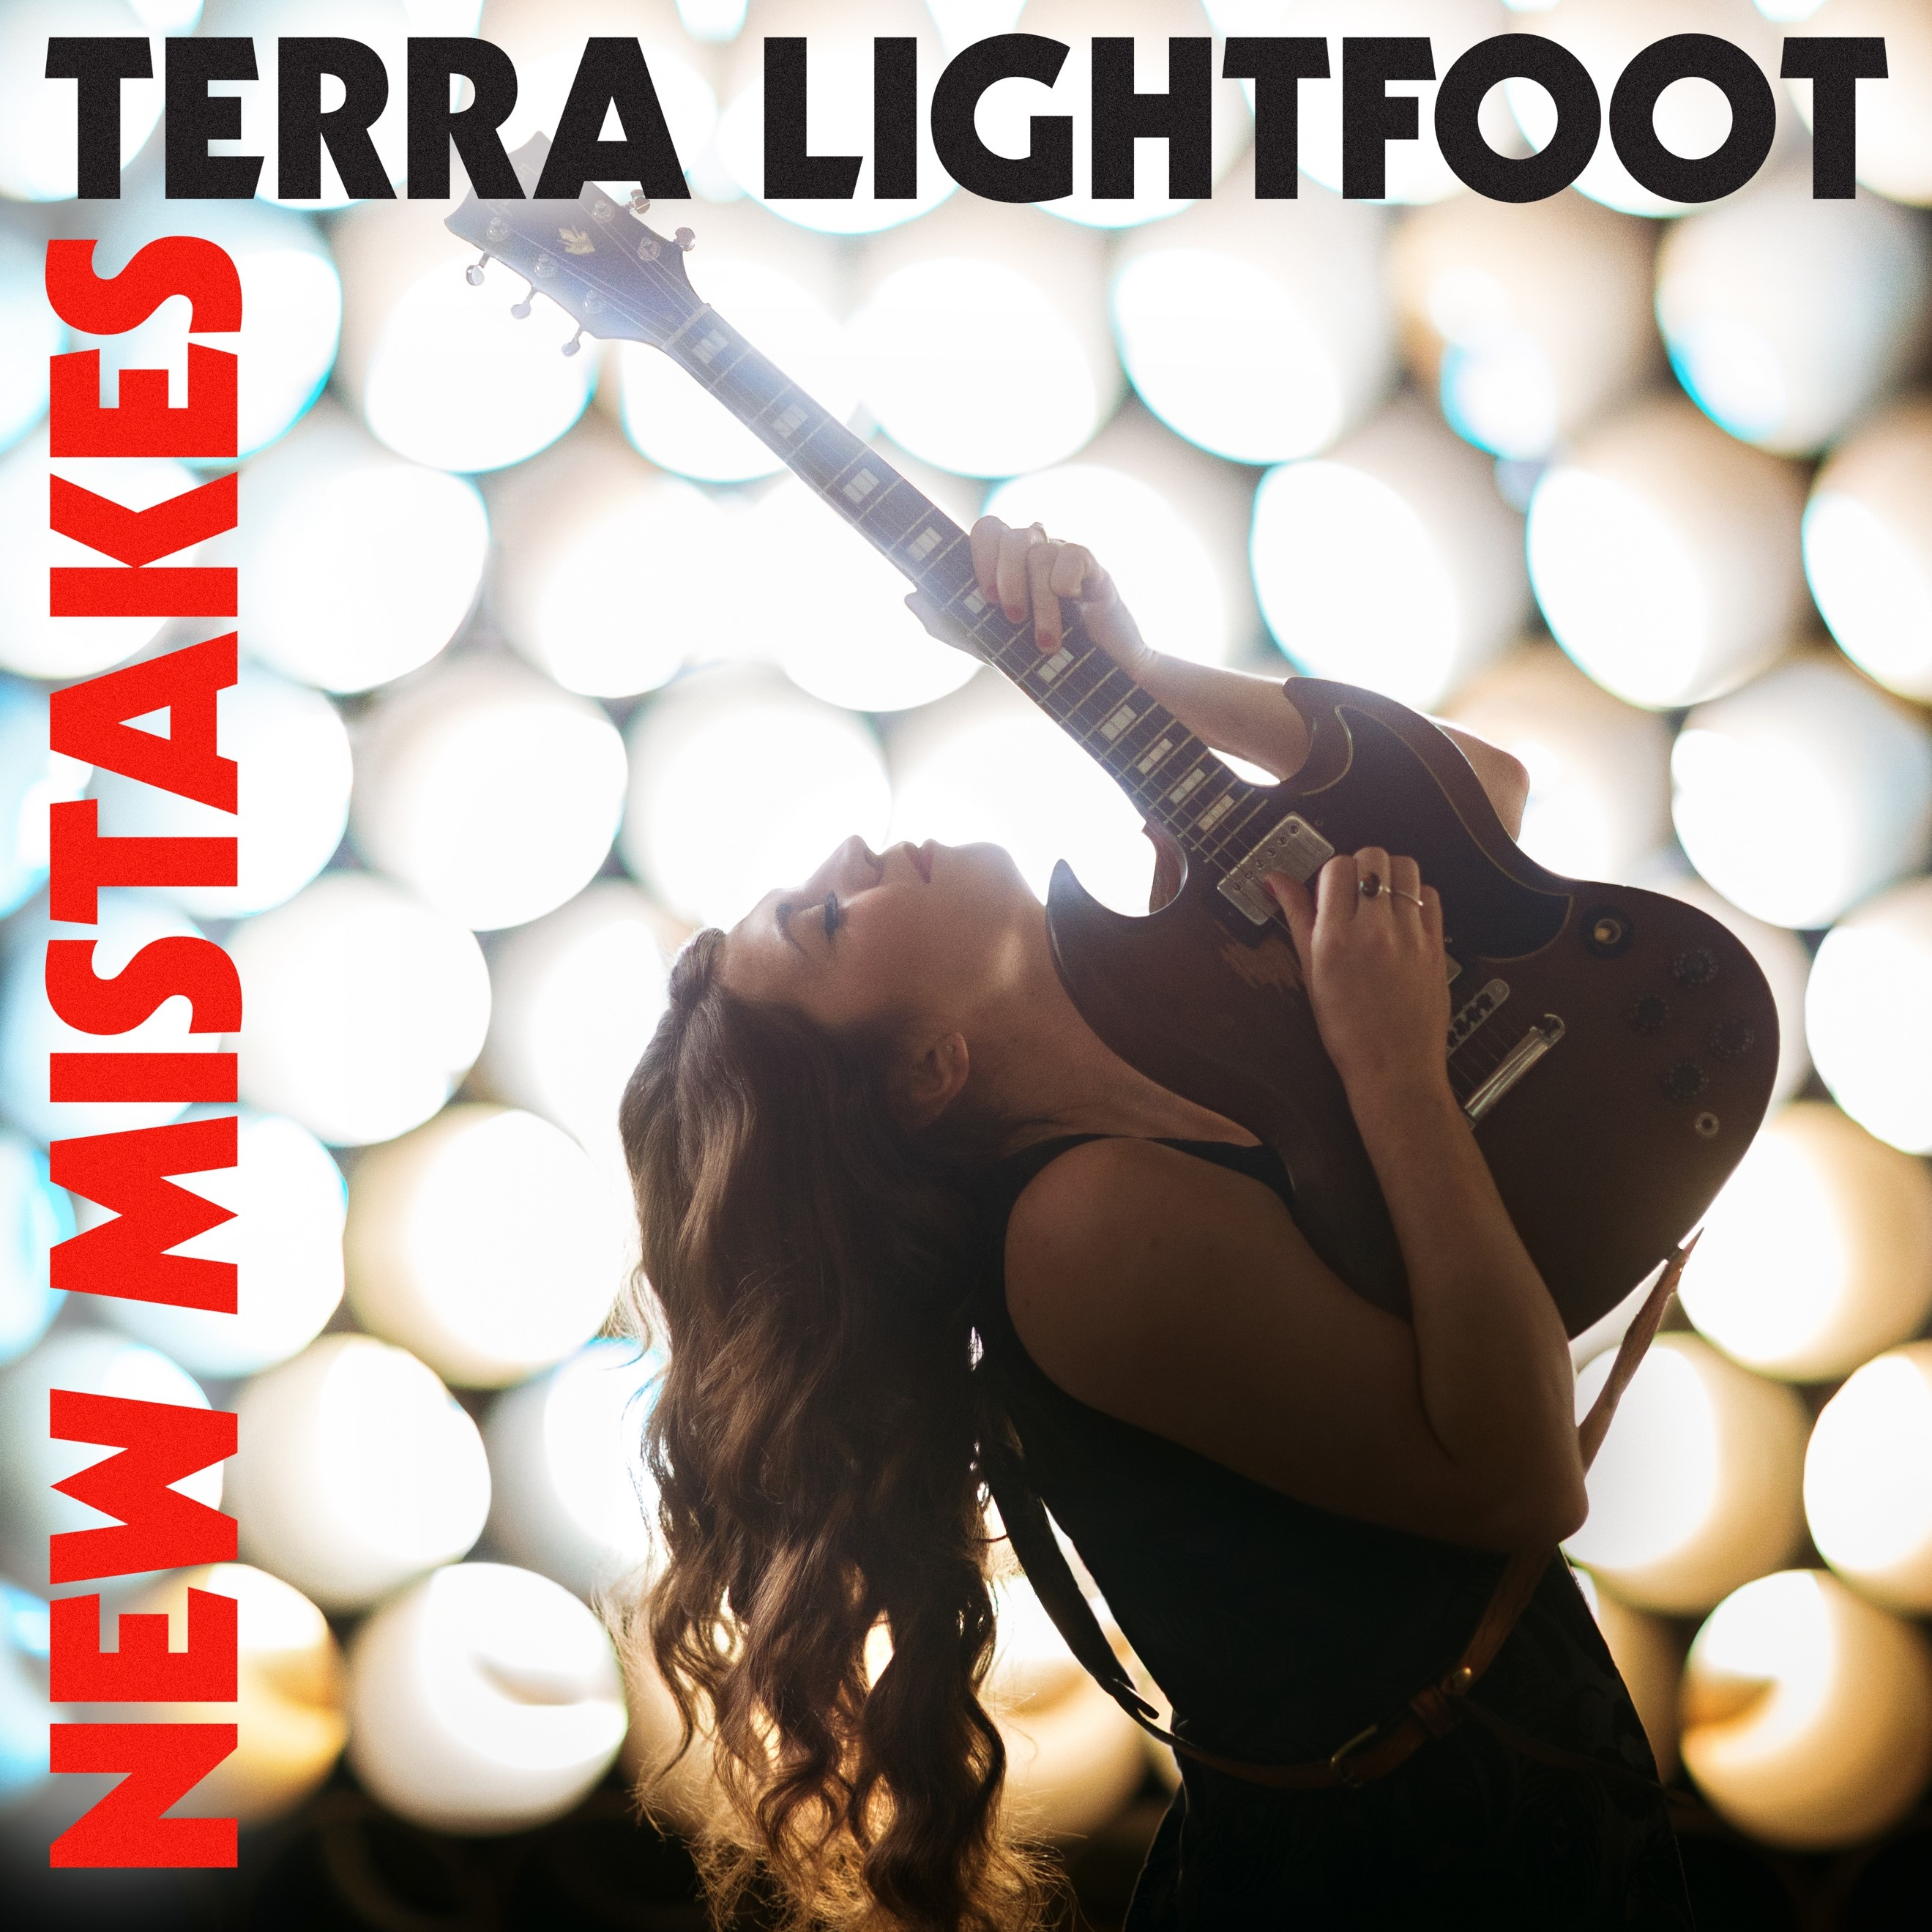 Terra Lightfoot new album out in October